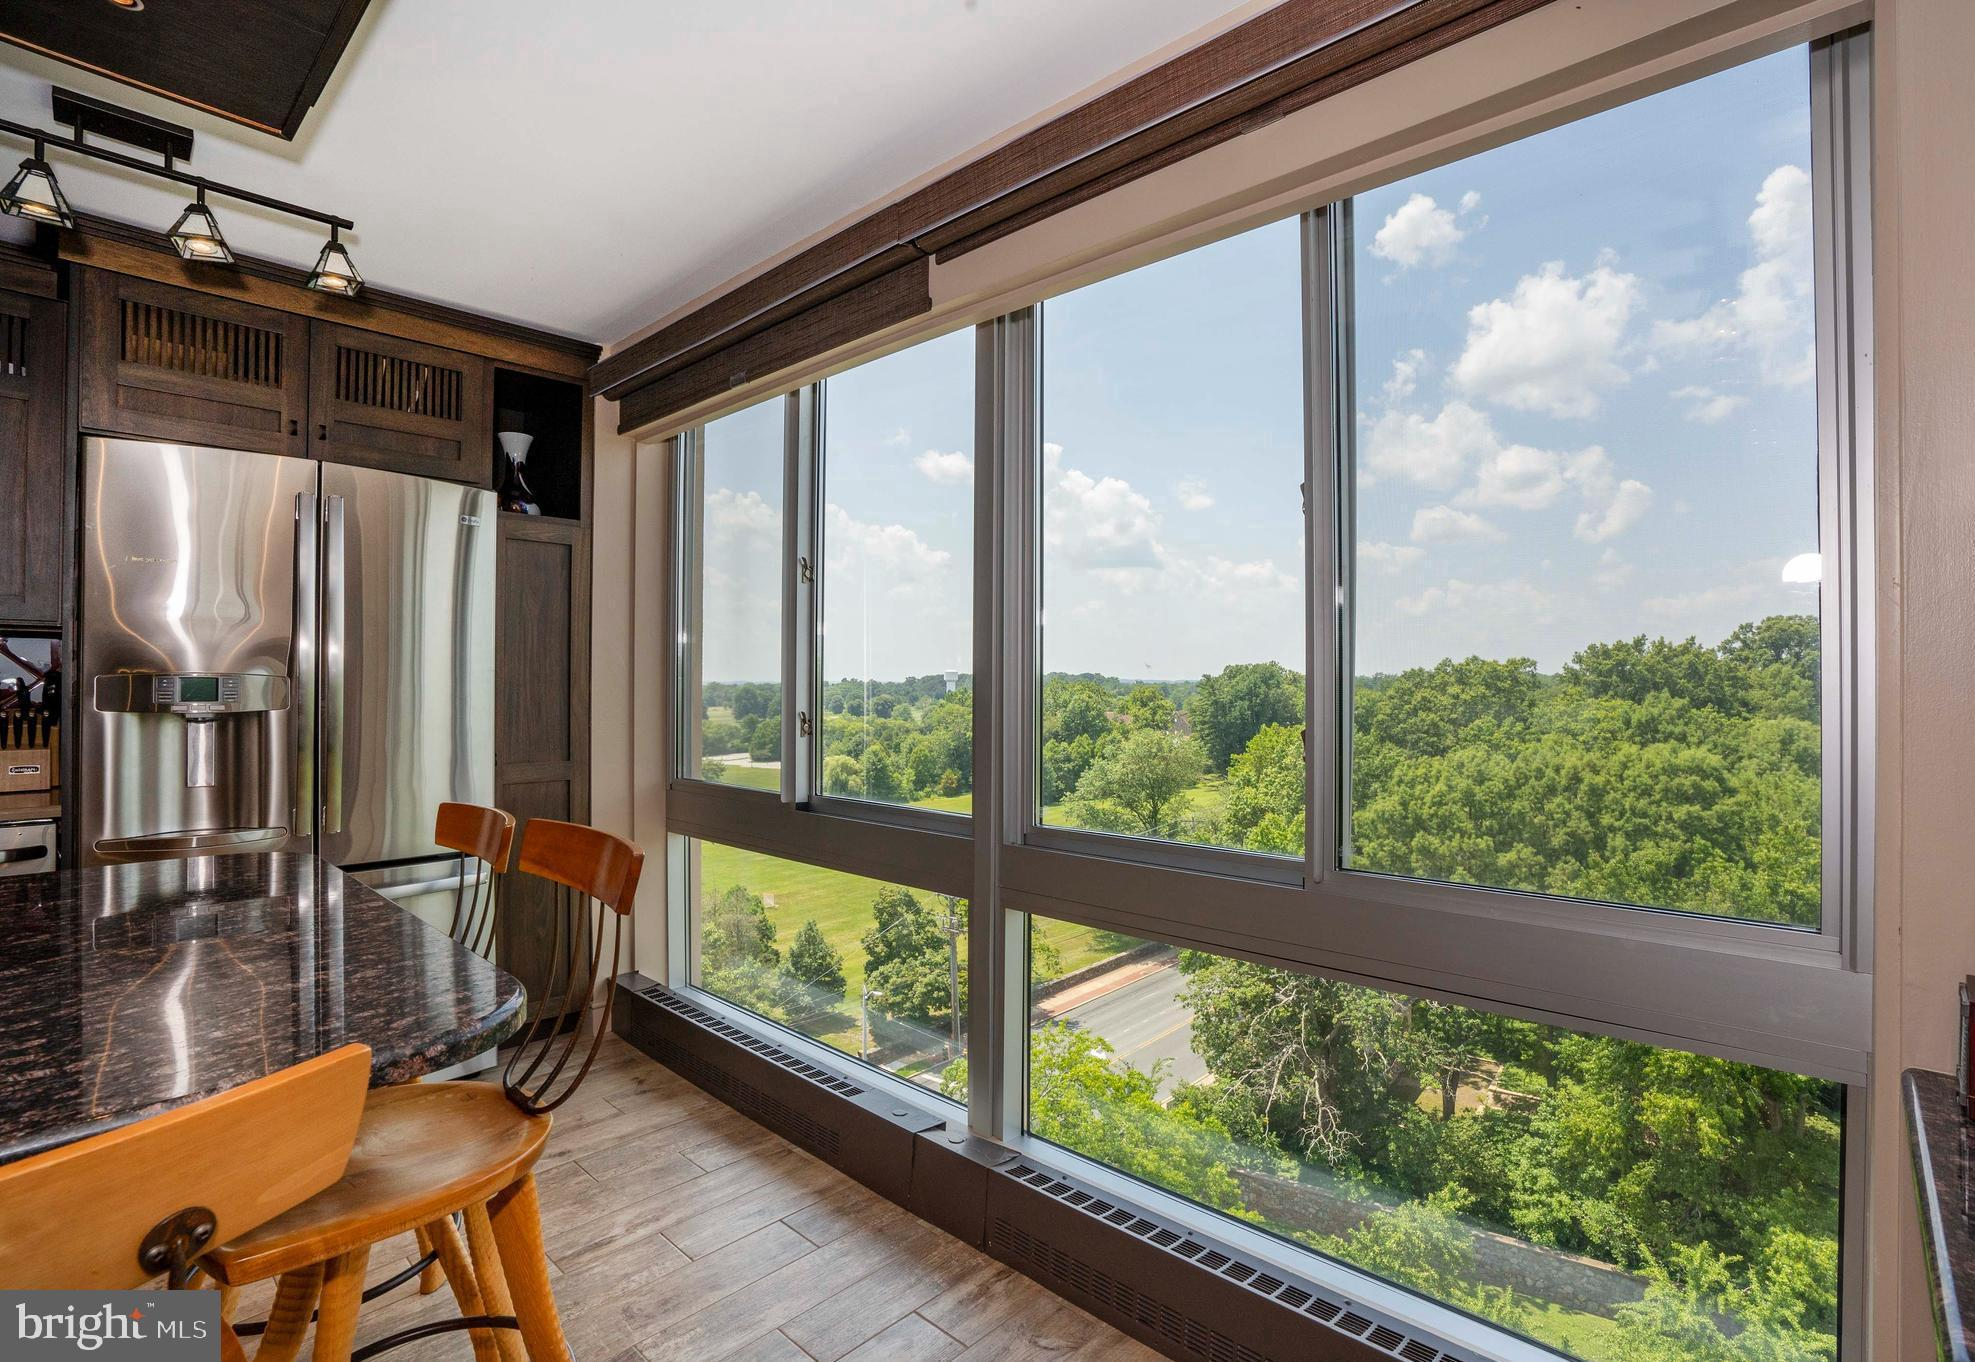 Imagine yourself in this rare and extremely large 3 bed and 2.5 bath luxury condominium.  Over 2,400 sq feet with 2 balconies - one off the master suite.12th floor views of West, North AND East allows you to enjoy the sunrise and the sunset over Rockford Park.  From the moment you arrive in the foyer, you see the abundance of natural light in the spacious living room with wet bar.  There is a large dining room with sliding door to 1st of 2 balconies.  Then enter the state-of-the-art kitchen with custom cabinets and granite.  A large center island, wine rack, and stainless appliances are just some of the features in this gorgeous kitchen.  The bedrooms are beyond the living room.   Two nicely sized bedrooms across from a full bath with high end finishes.  Then onto the master suite retreat.  The spacious bedroom has it's own balcony space.  There is a dressing room area with multiple closets on the way to the master bath with it's dual sink vanity and double sized shower with all beautifully tiled and appointed.  There is also a dedicated laundry room with full size washer & dryer along with a utility sink.  There are 3 indoor parking spots available for purchase if buyer has interest.  This is a one-of-a-kind unit in The Devon which offers all the amenities that a condo building affords: 24/7 doorman, 3 elevators, swimming pool, private parking lots, newly updated library.  Plus the lobby and hallways are newly renovated all with modern decor.  The Devon is perfectly situated.  Only 5 blocks to Rockford Park and 2 blocks to Lifelong Learning Center.  Only 1/2 mile to Trolley Square with shopping and restaurants.  Close to 95 for travel North & South.  Schedule your tour today!  The condo fee is based on 2480 sq ft.